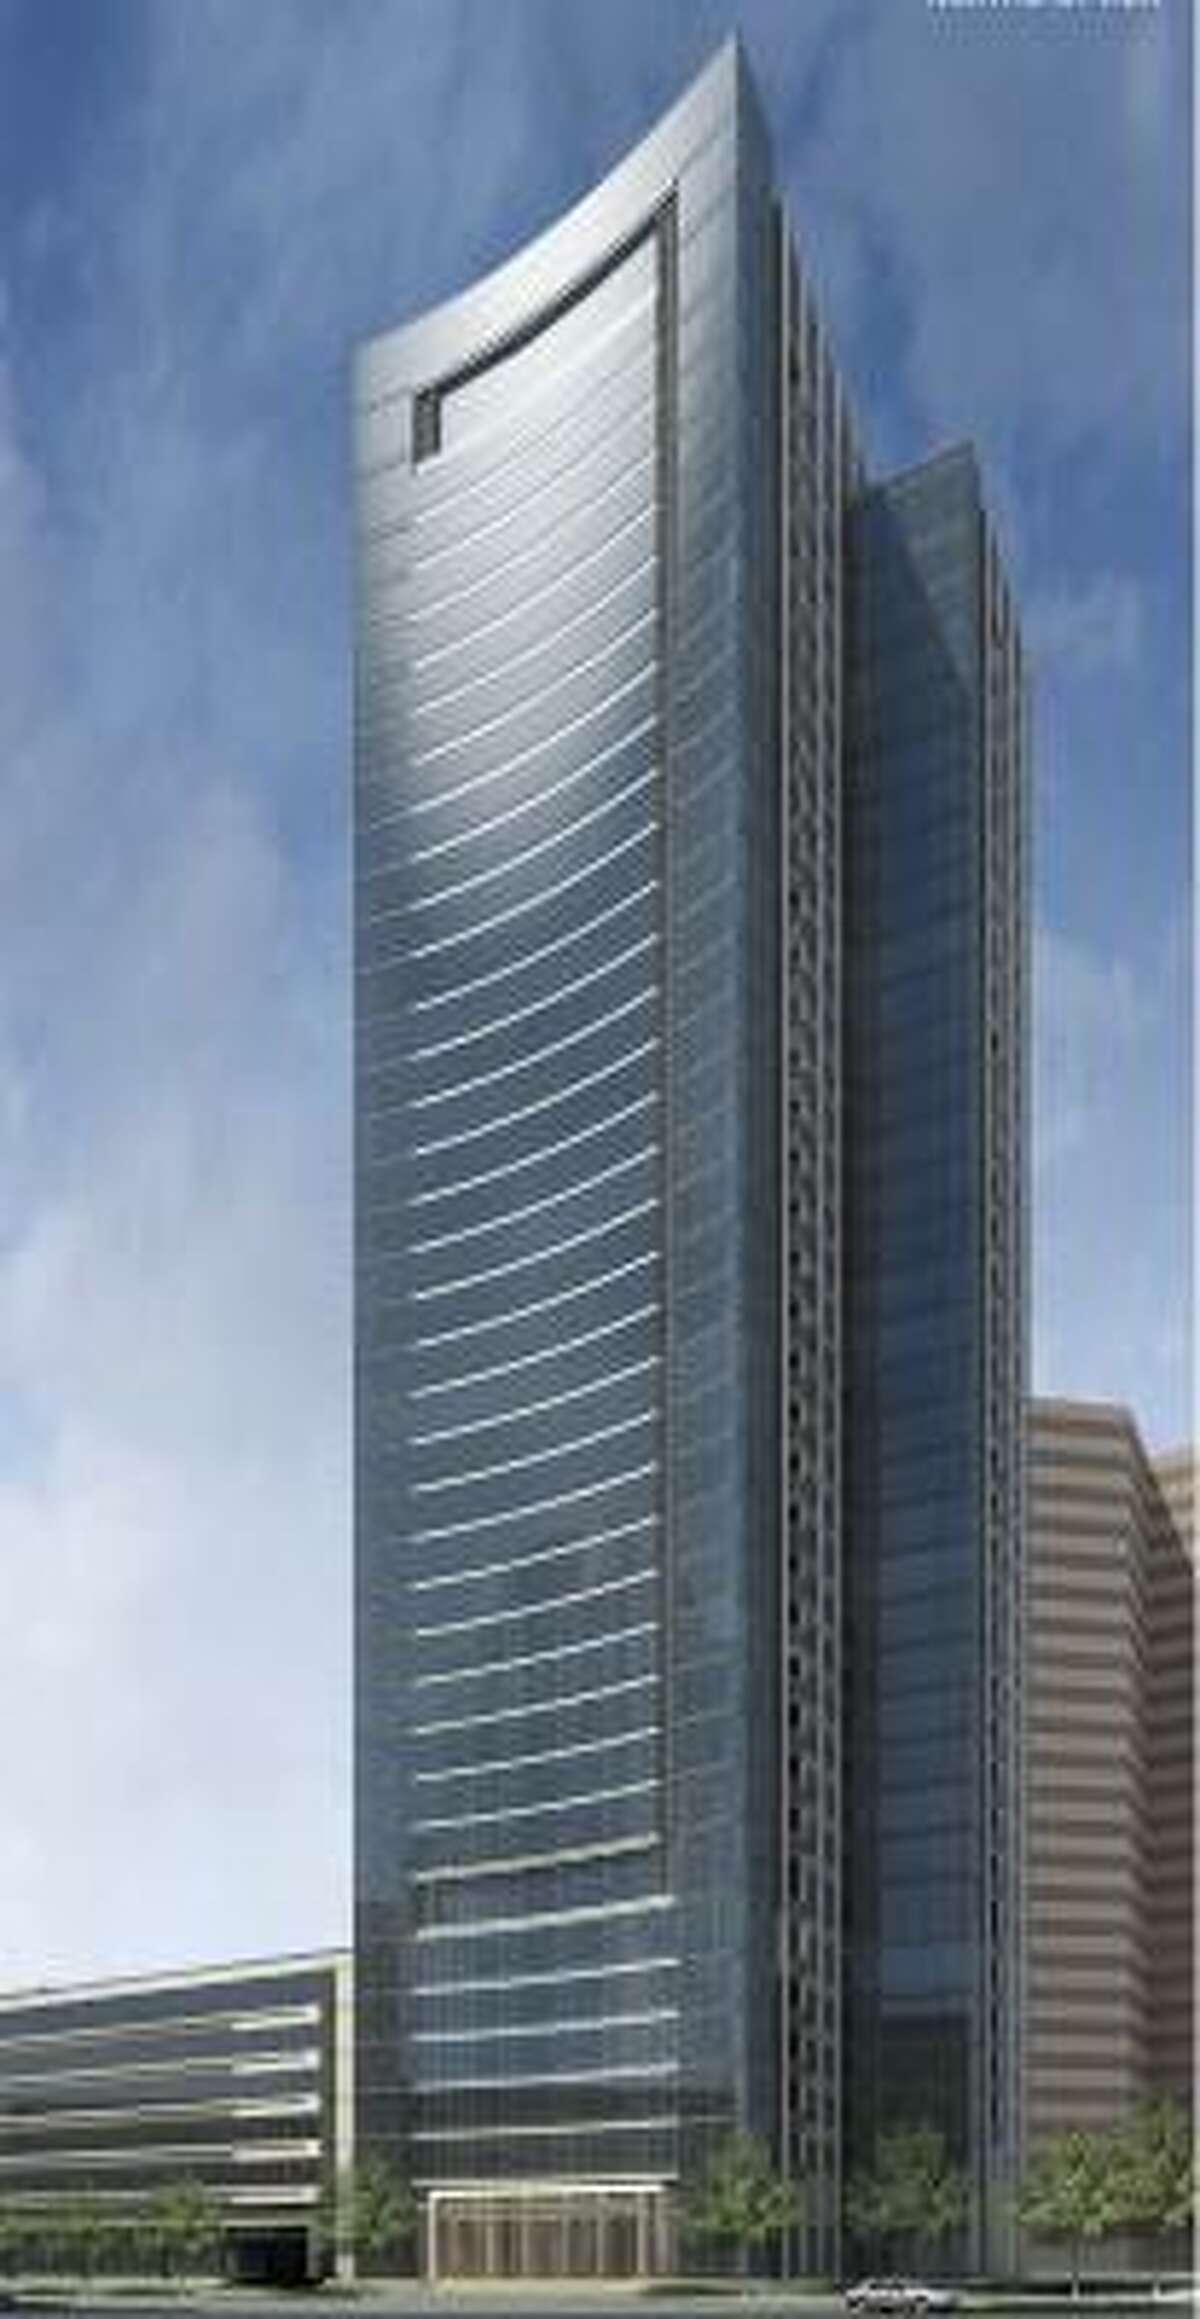 The Hanover Co. has announced plans to build a 37-story residential tower in Uptown as part of Wulfe & Co.'s BLVD Place development.